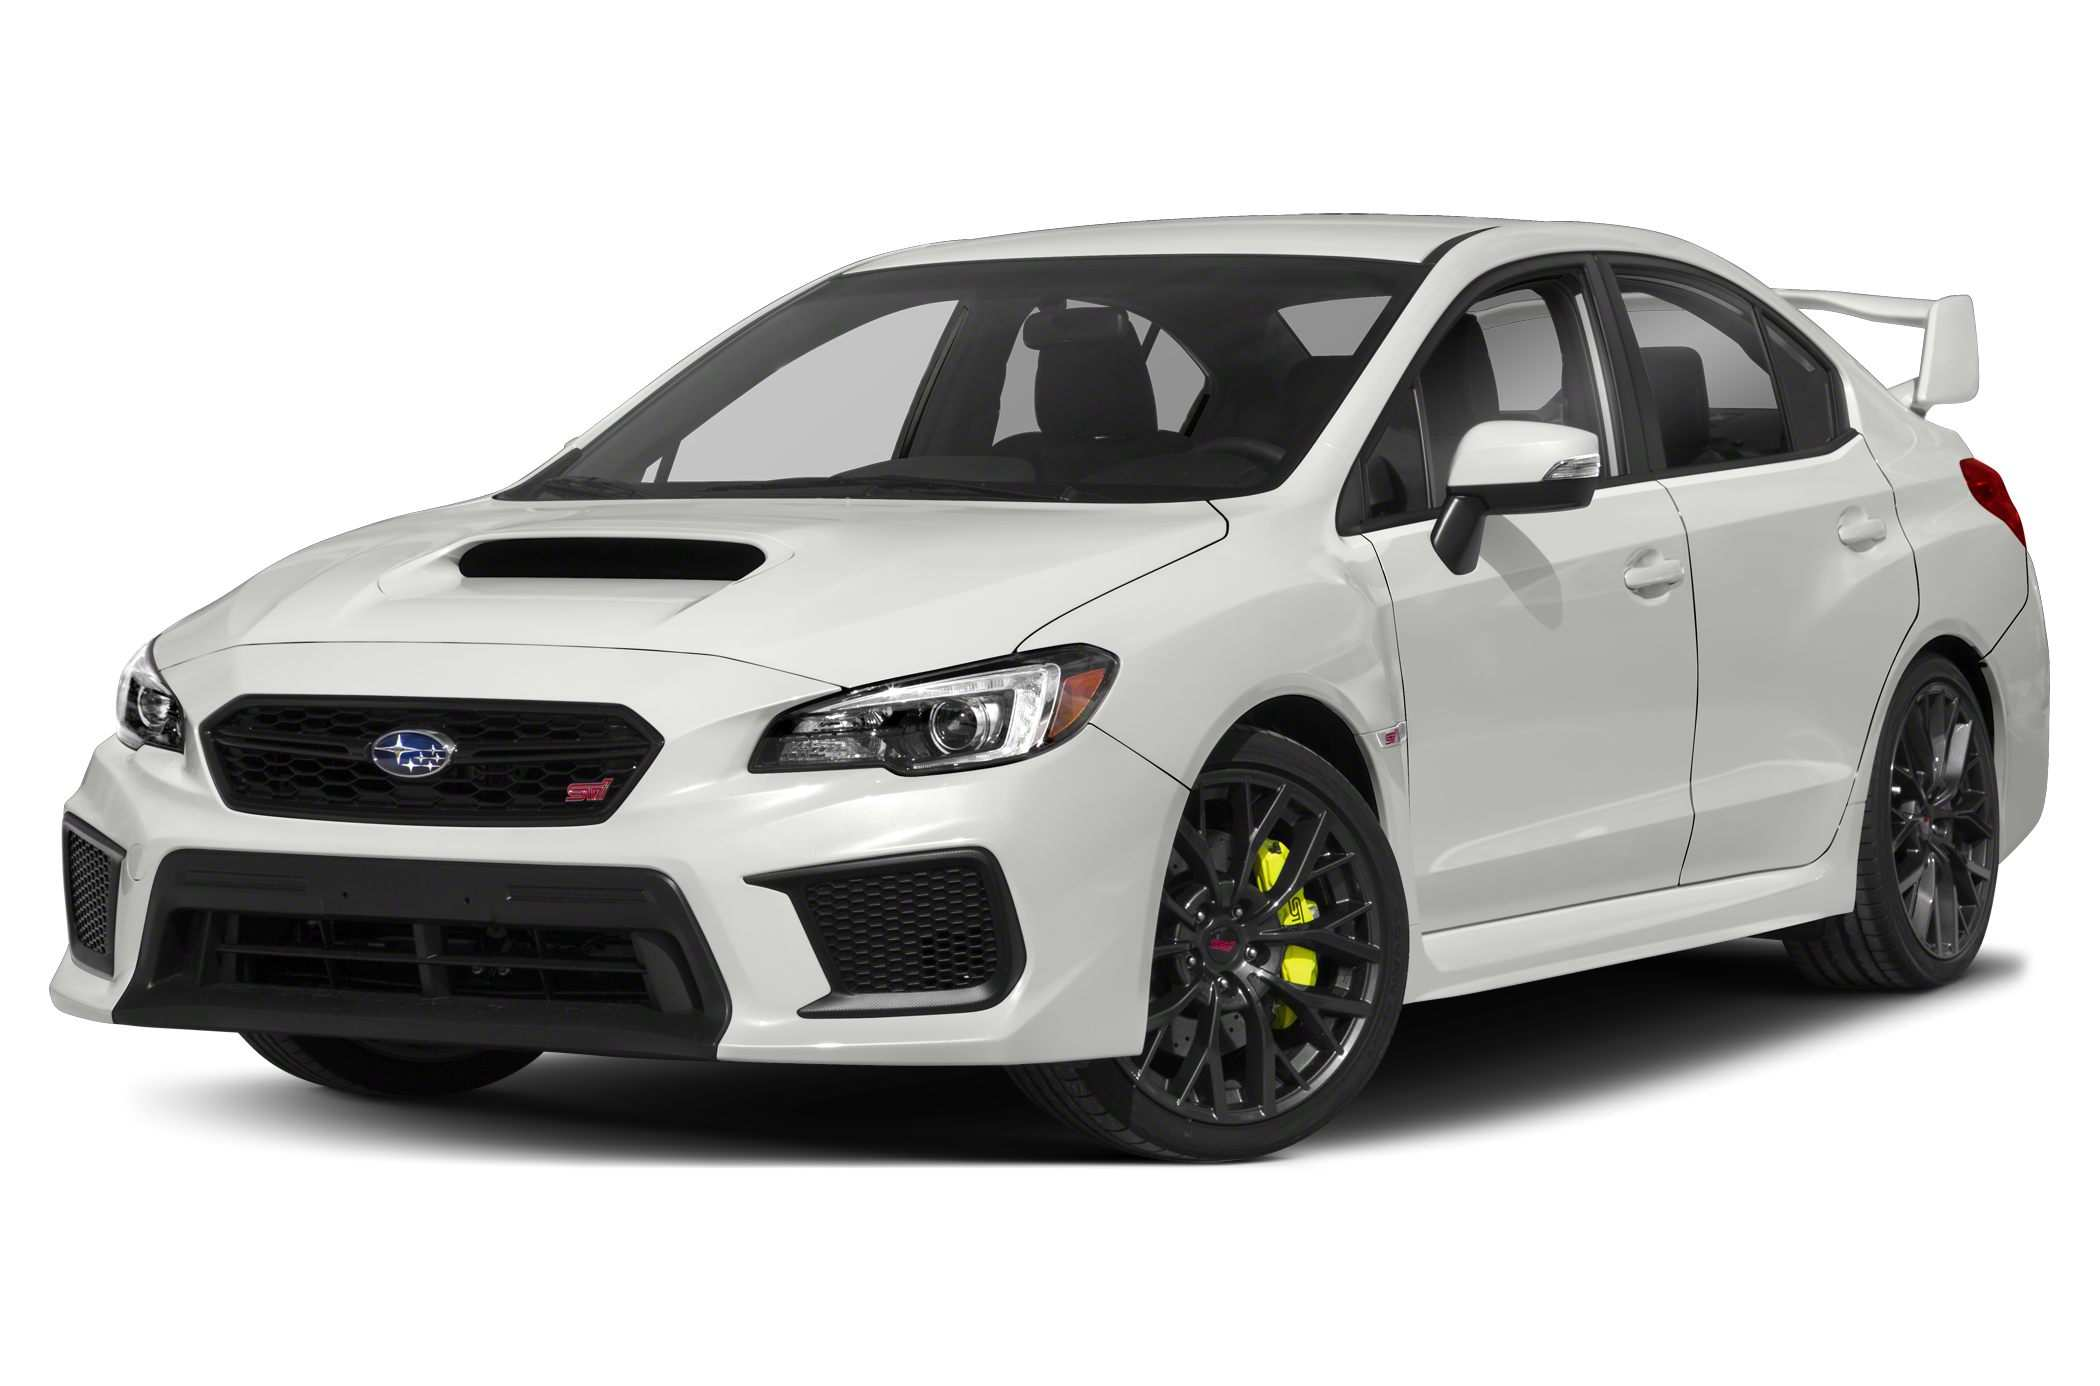 57 A 2019 Subaru Impreza Wrx Concept And Review